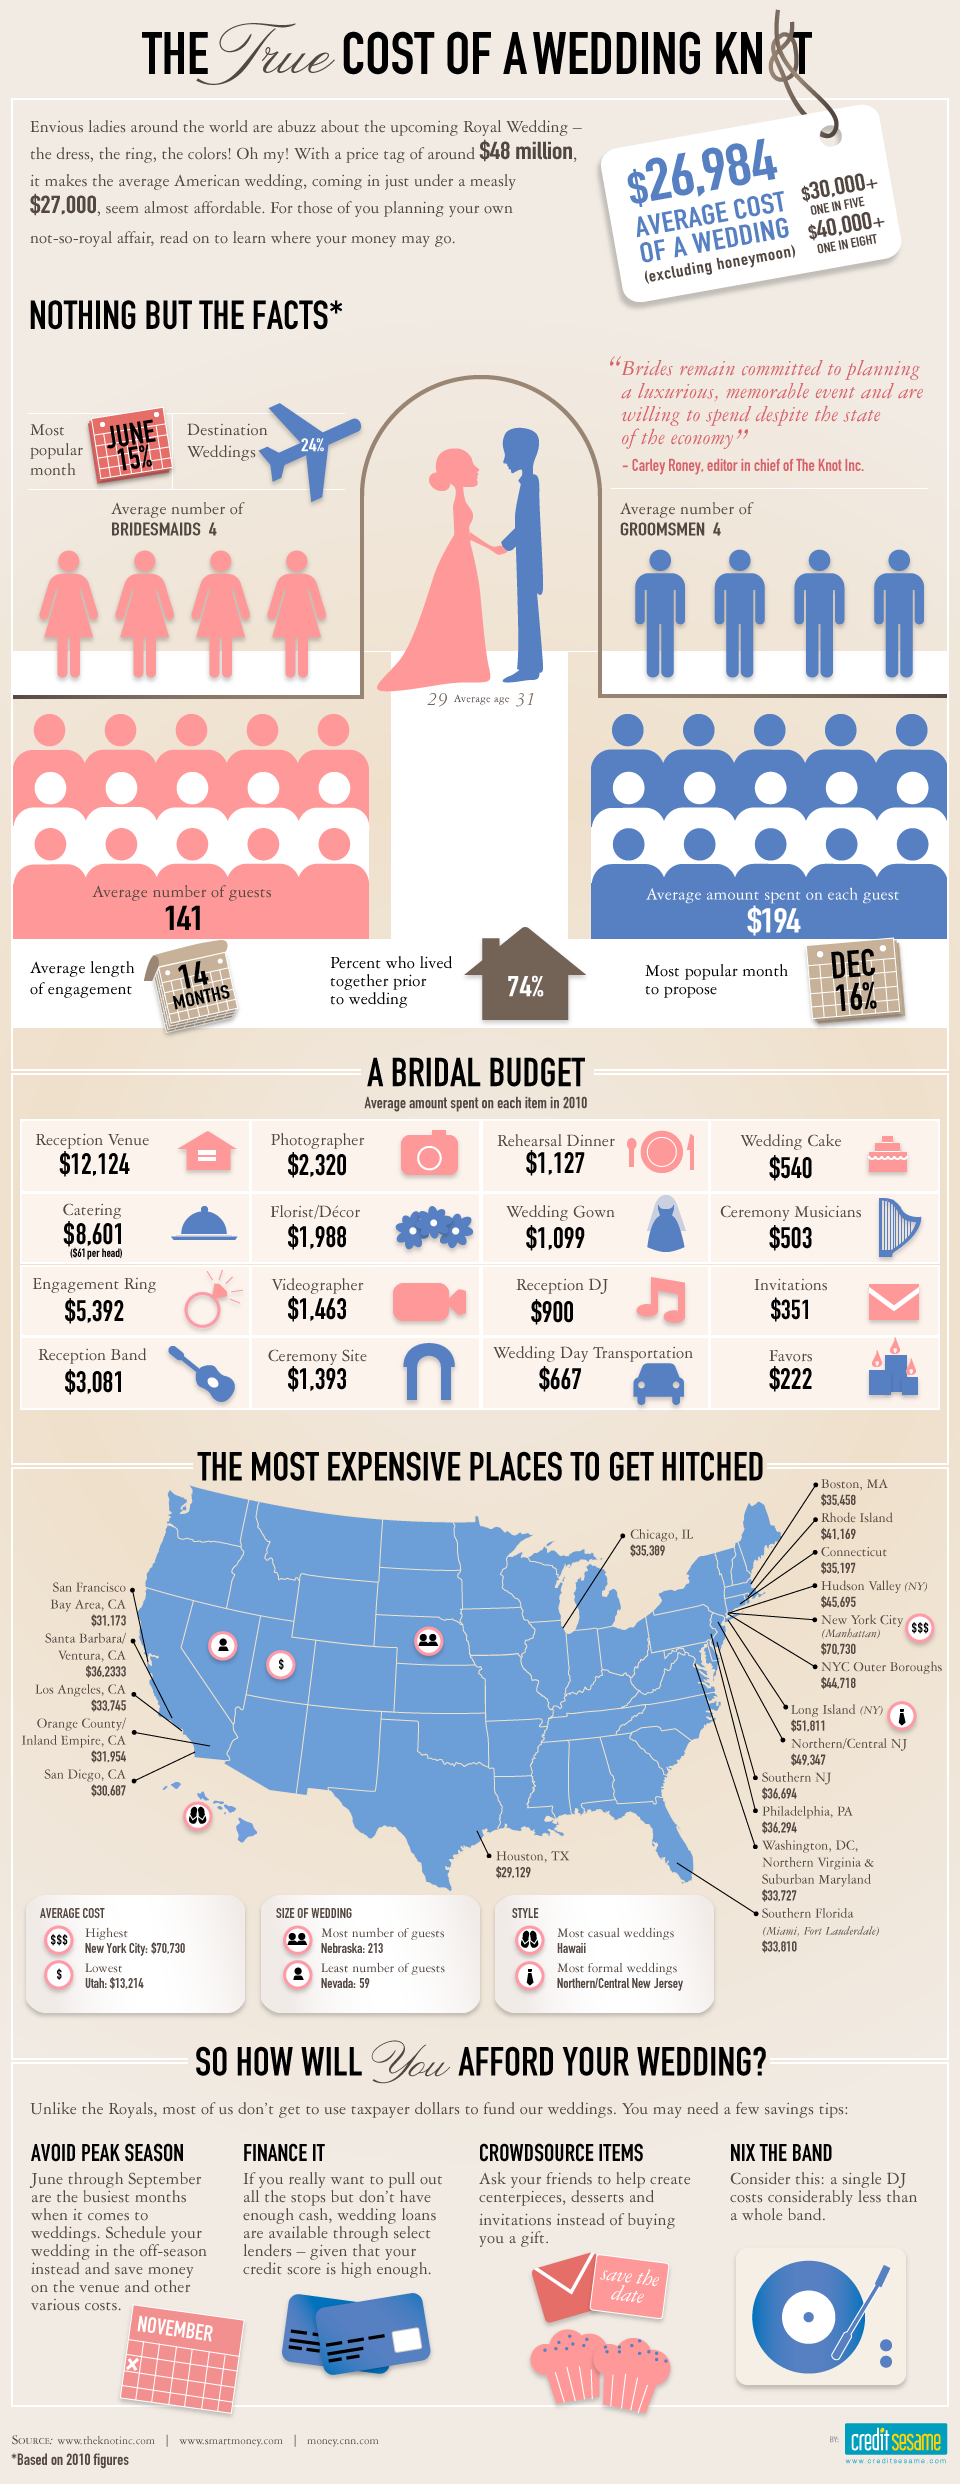 Wedding Cost Infographic Small